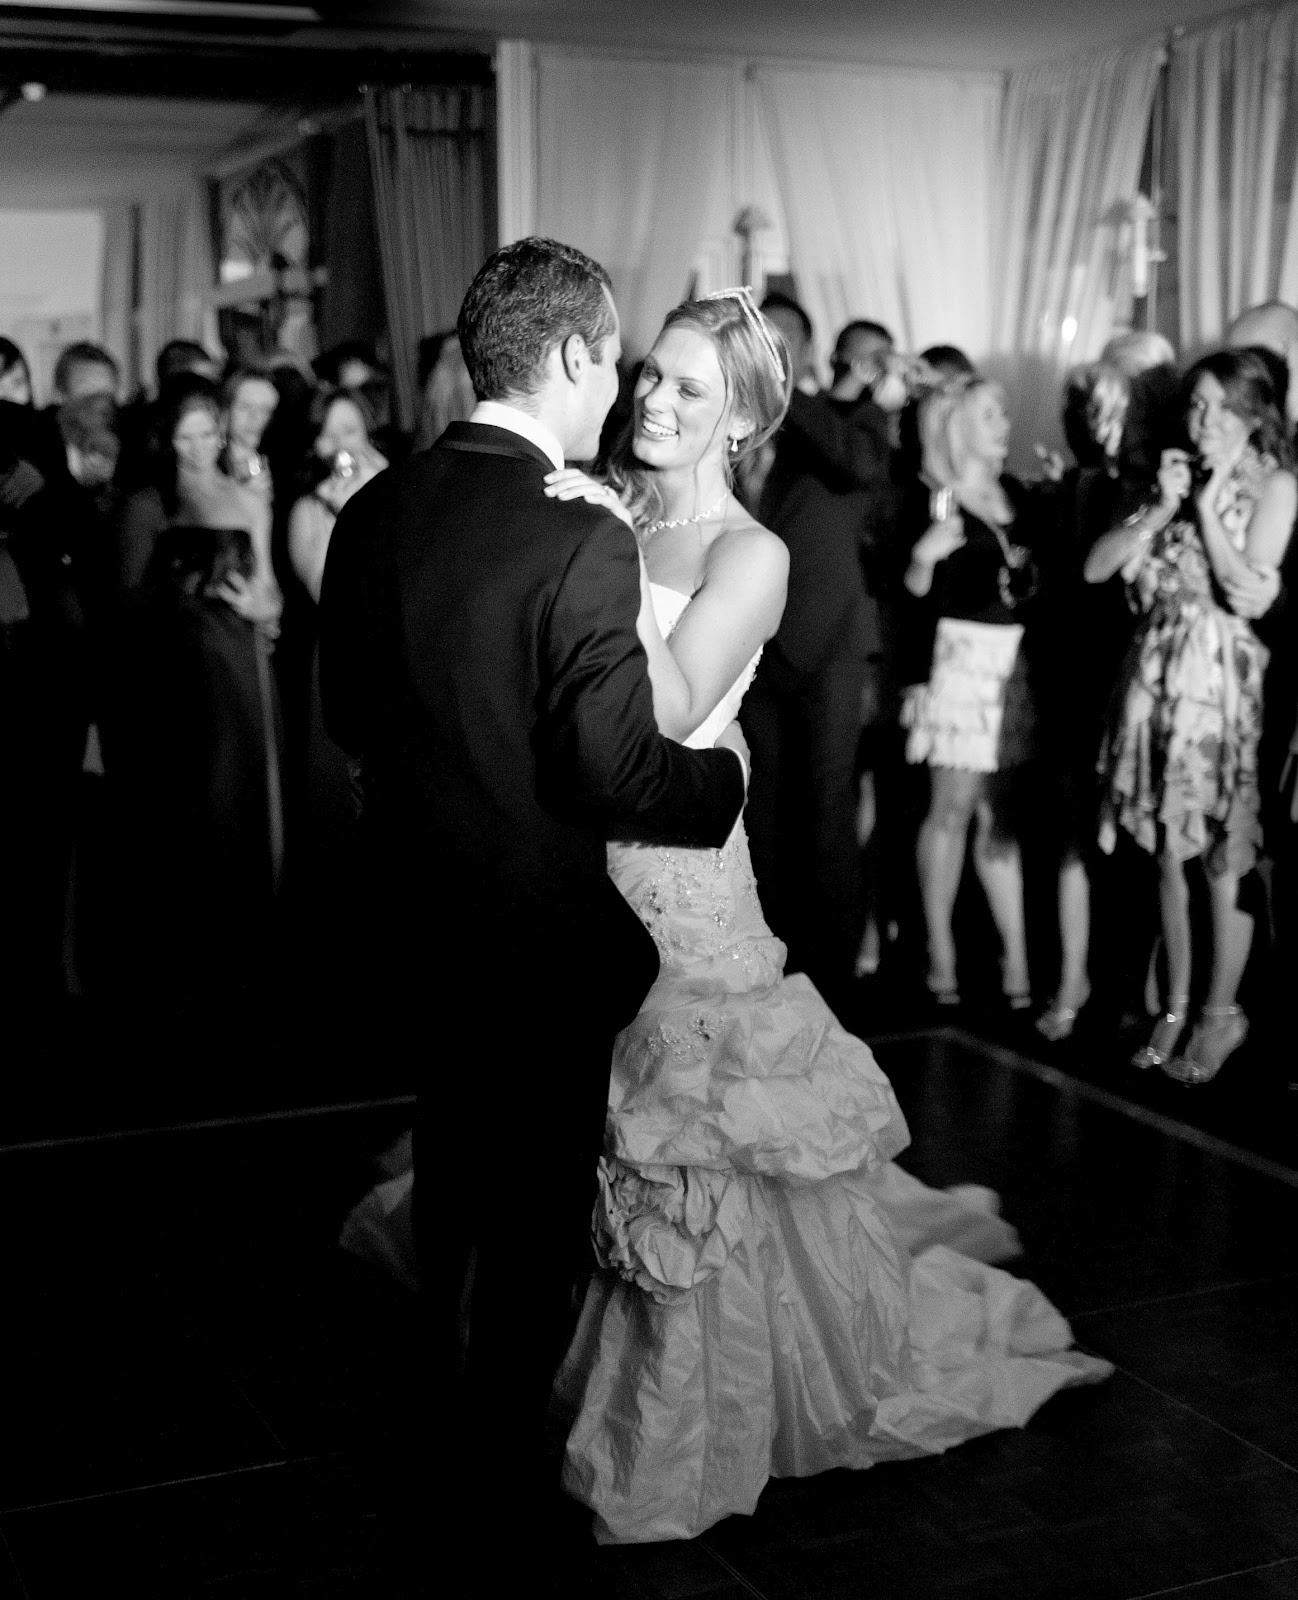 Worst Wedding Pictures Ever: Canon DSLR Video Reviews And Advice Blog For 5D2,7D,550D